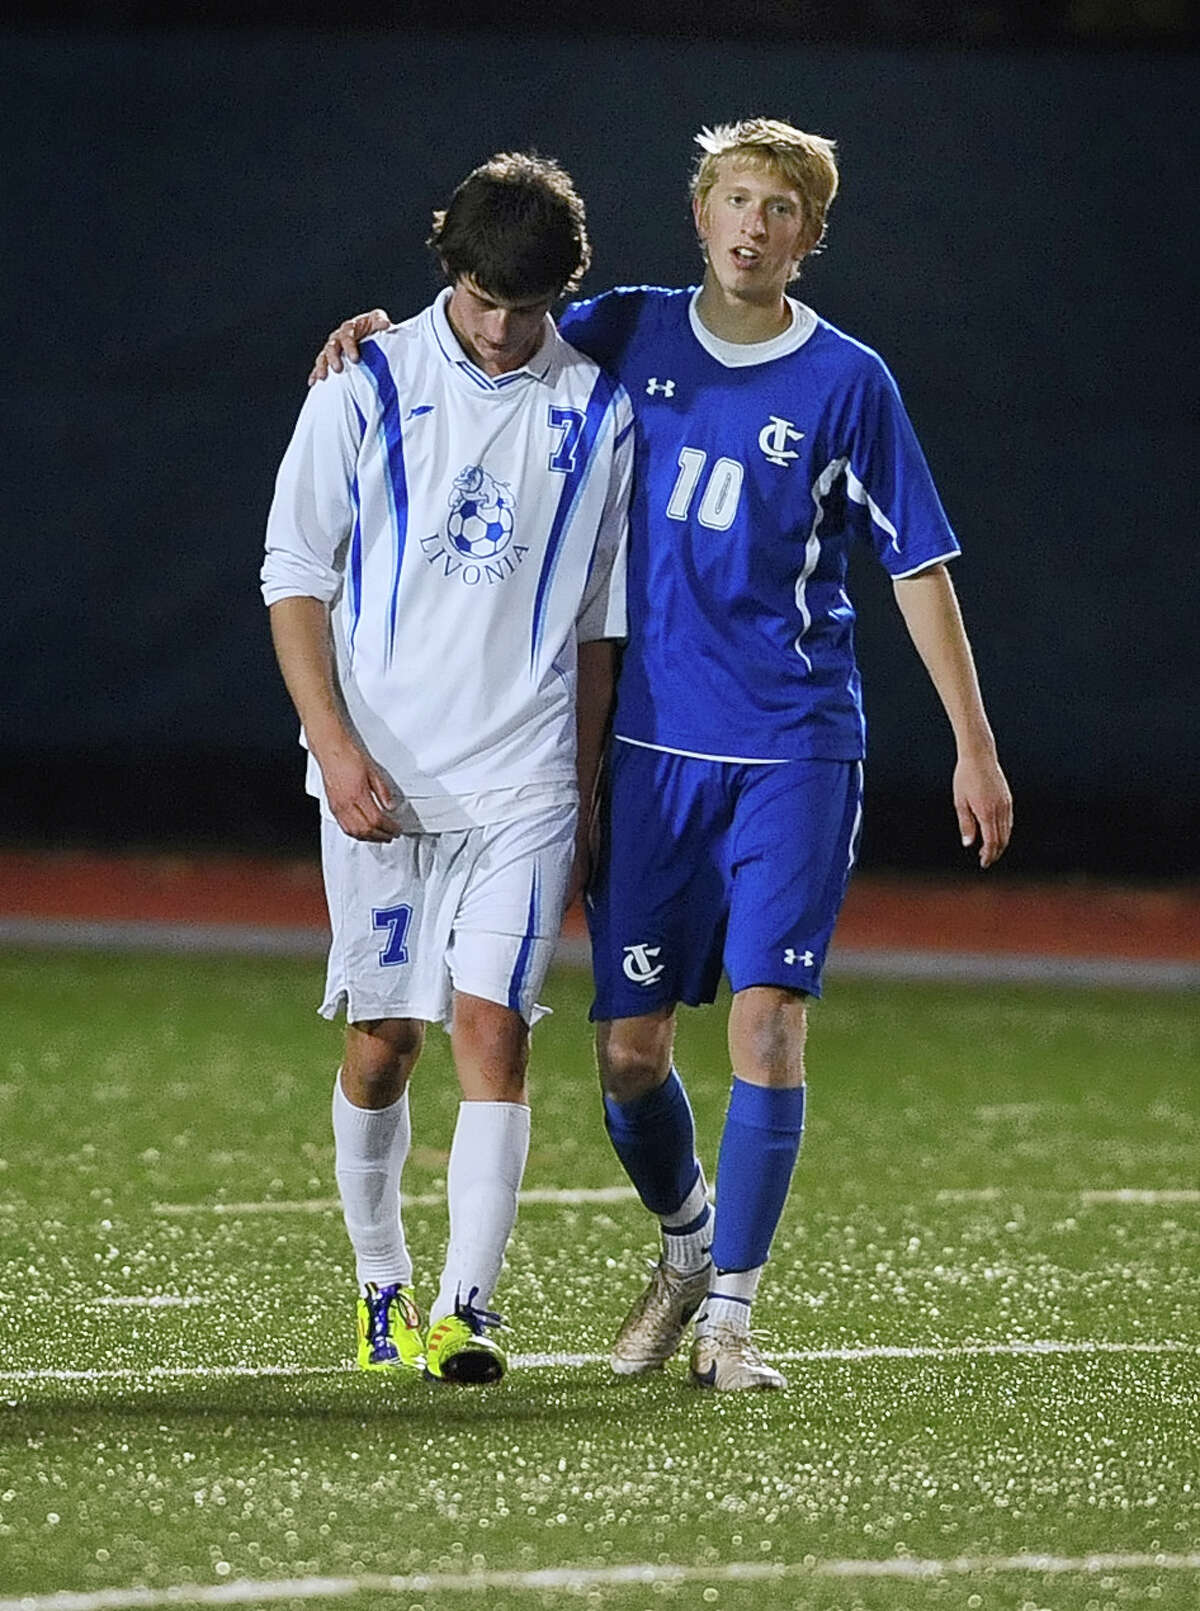 Ichabod Crane's Livonia's during Class B NYSPHSAA Boys Soccer Championship game played at Middletown High School on Sunday, November 18, 2012. After a scoreless regulation and 30 minutes of overtime, Ichabod Crane and Livonia (Section 5) were named class B co-champions. (Adrian Kraus / Special to the Times Union)